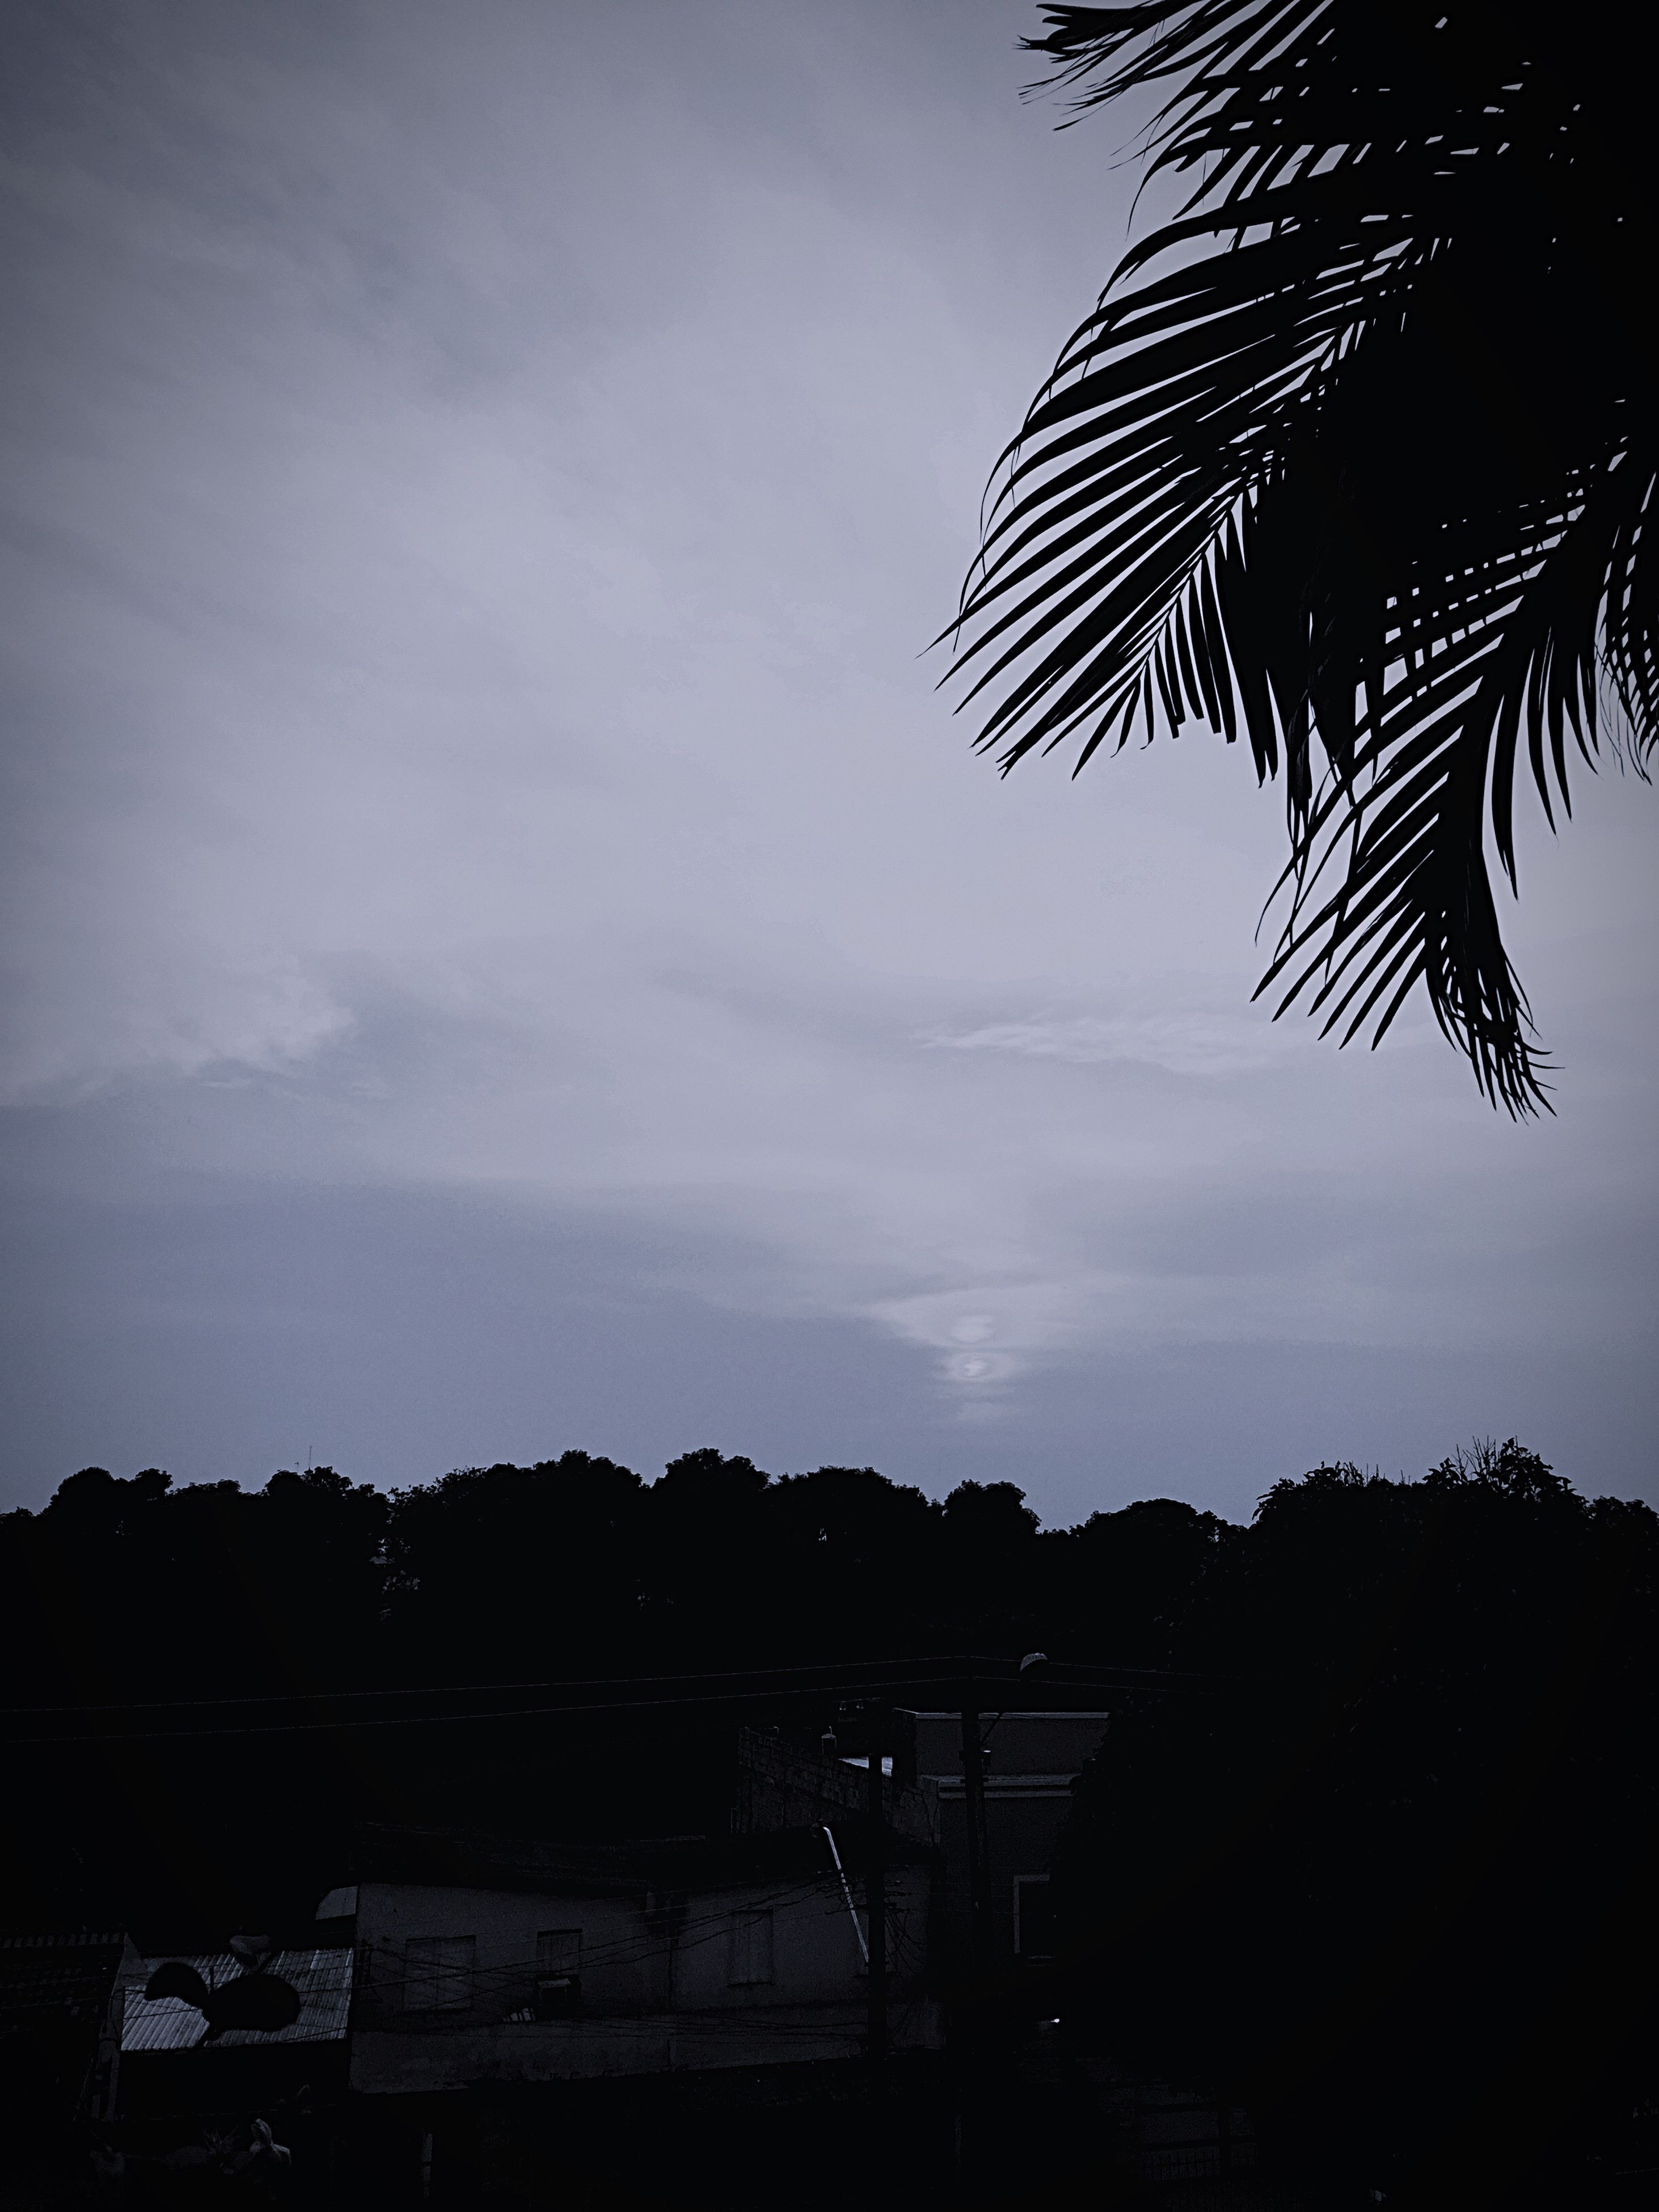 sky, tree, silhouette, tranquility, palm tree, growth, nature, low angle view, tranquil scene, cloud - sky, beauty in nature, scenics, cloud, outdoors, no people, sunset, dusk, cloudy, branch, landscape